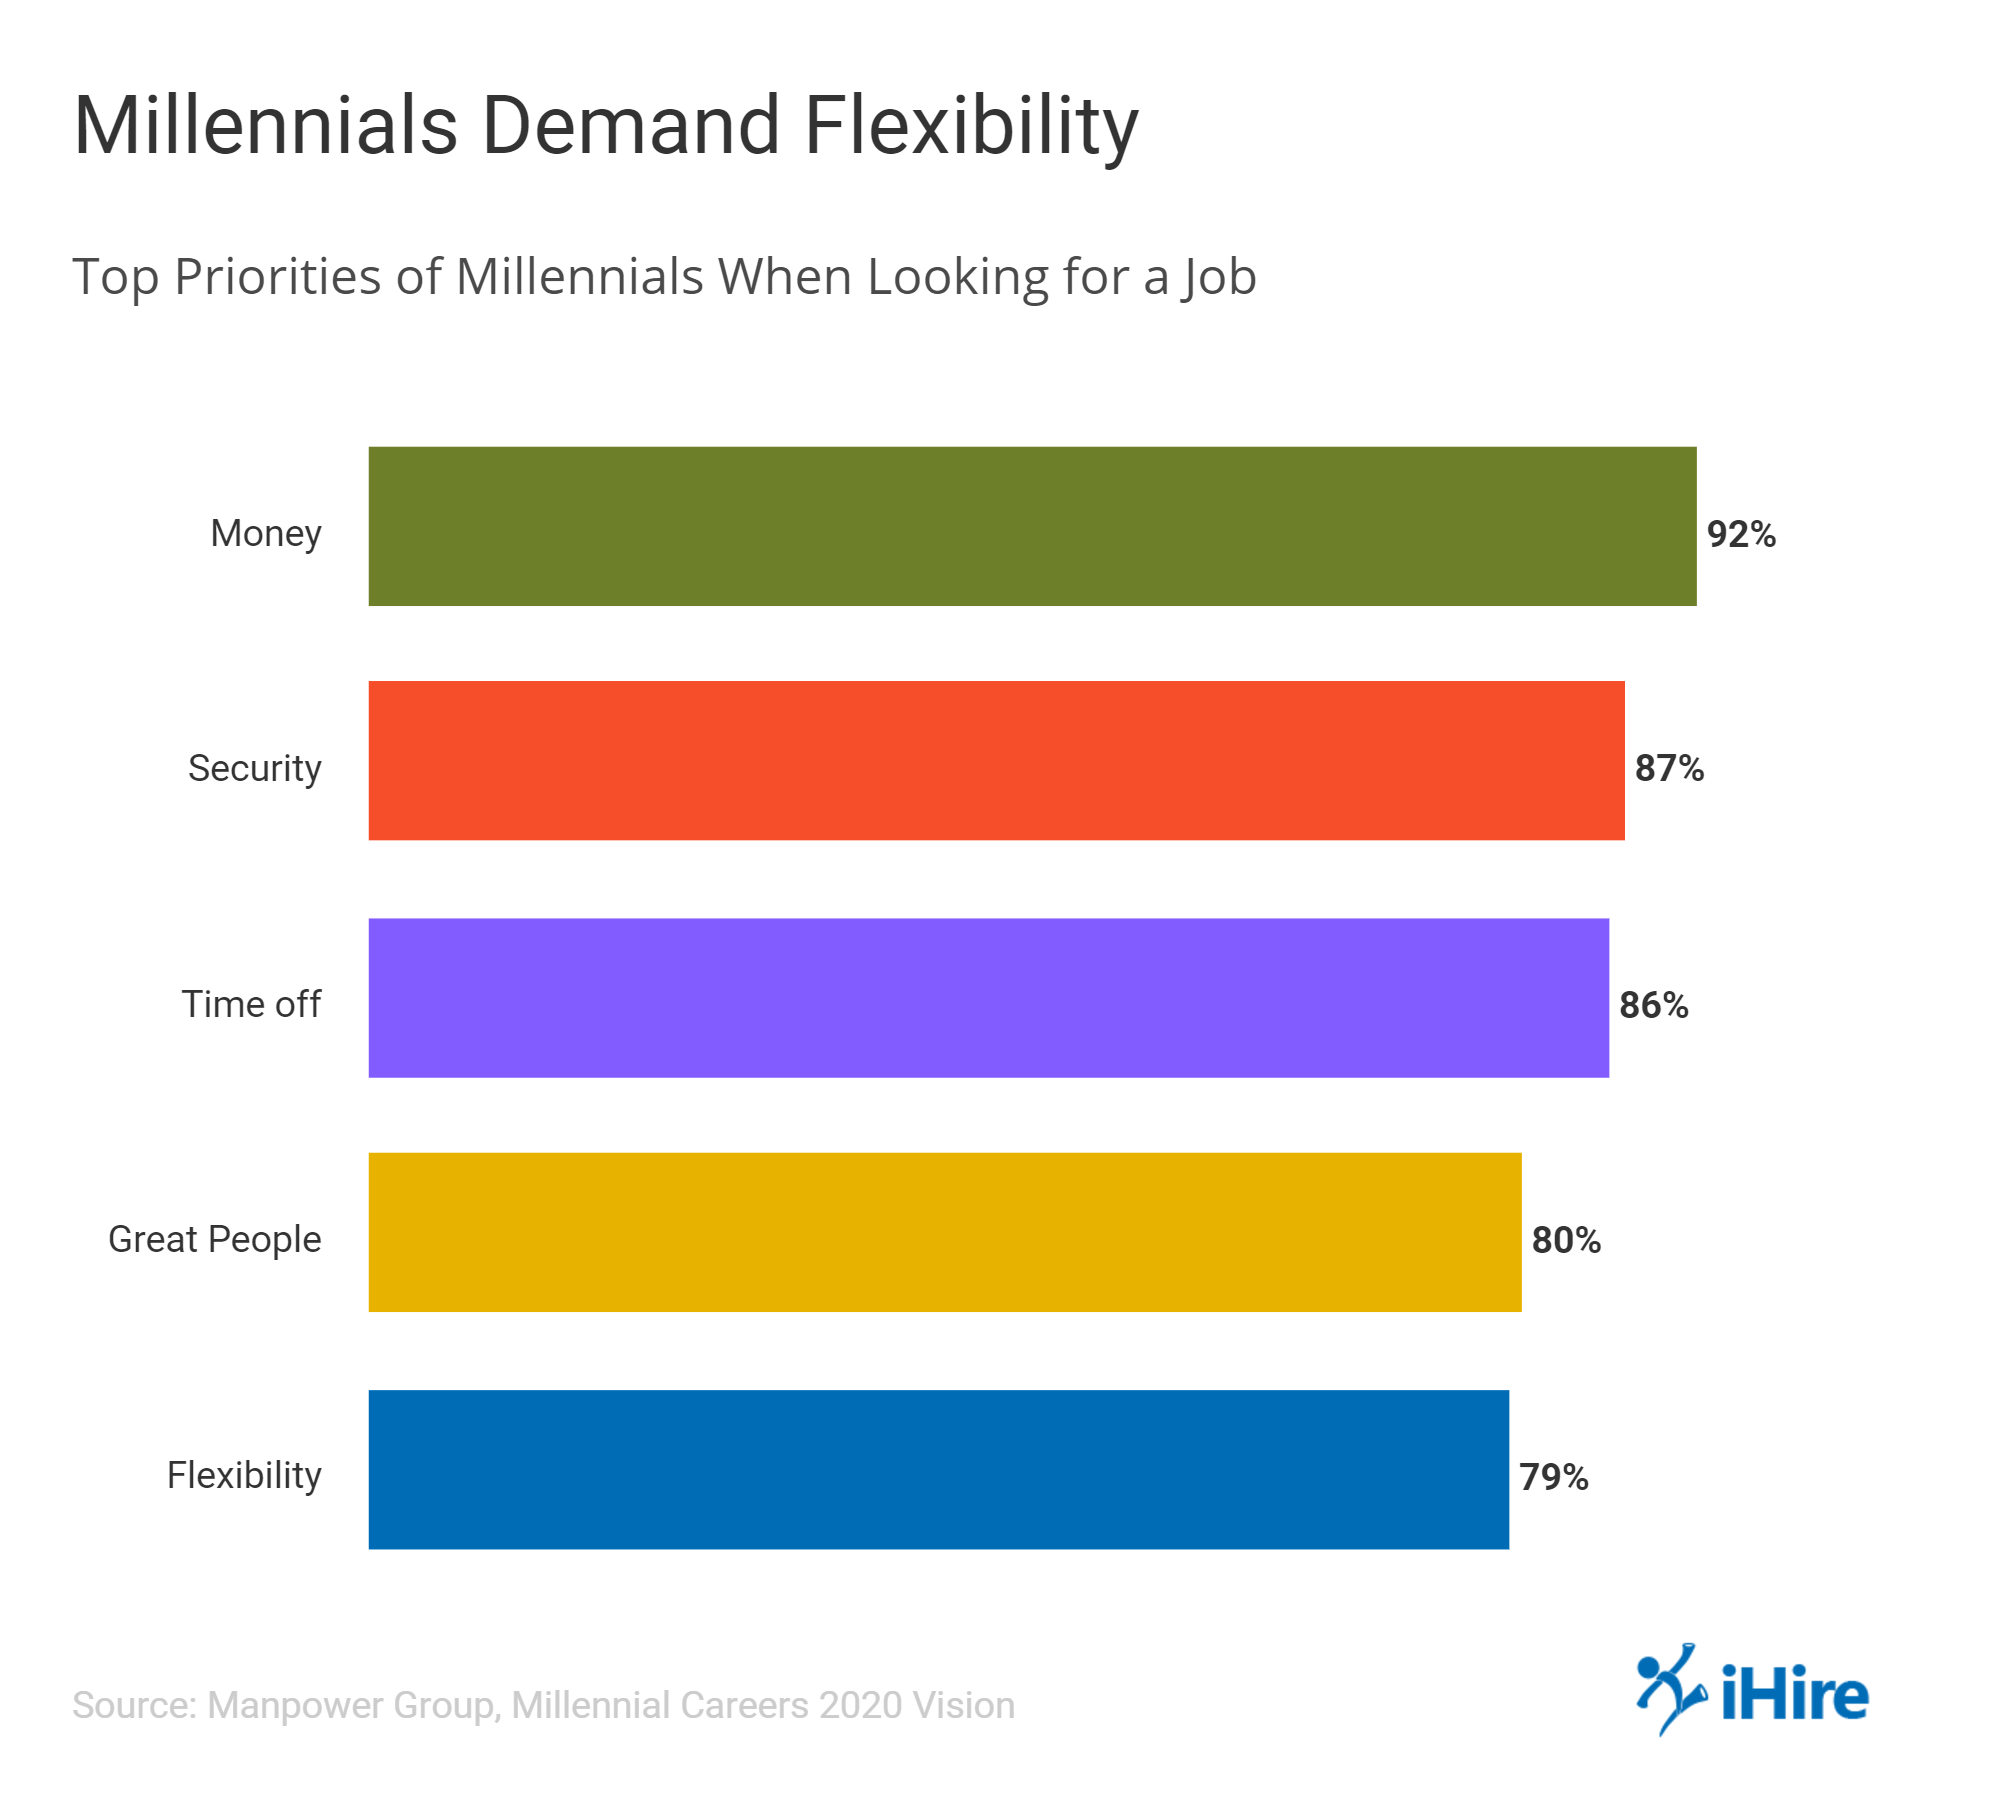 Flexibility is one of the top priorities for millennials when looking for work.